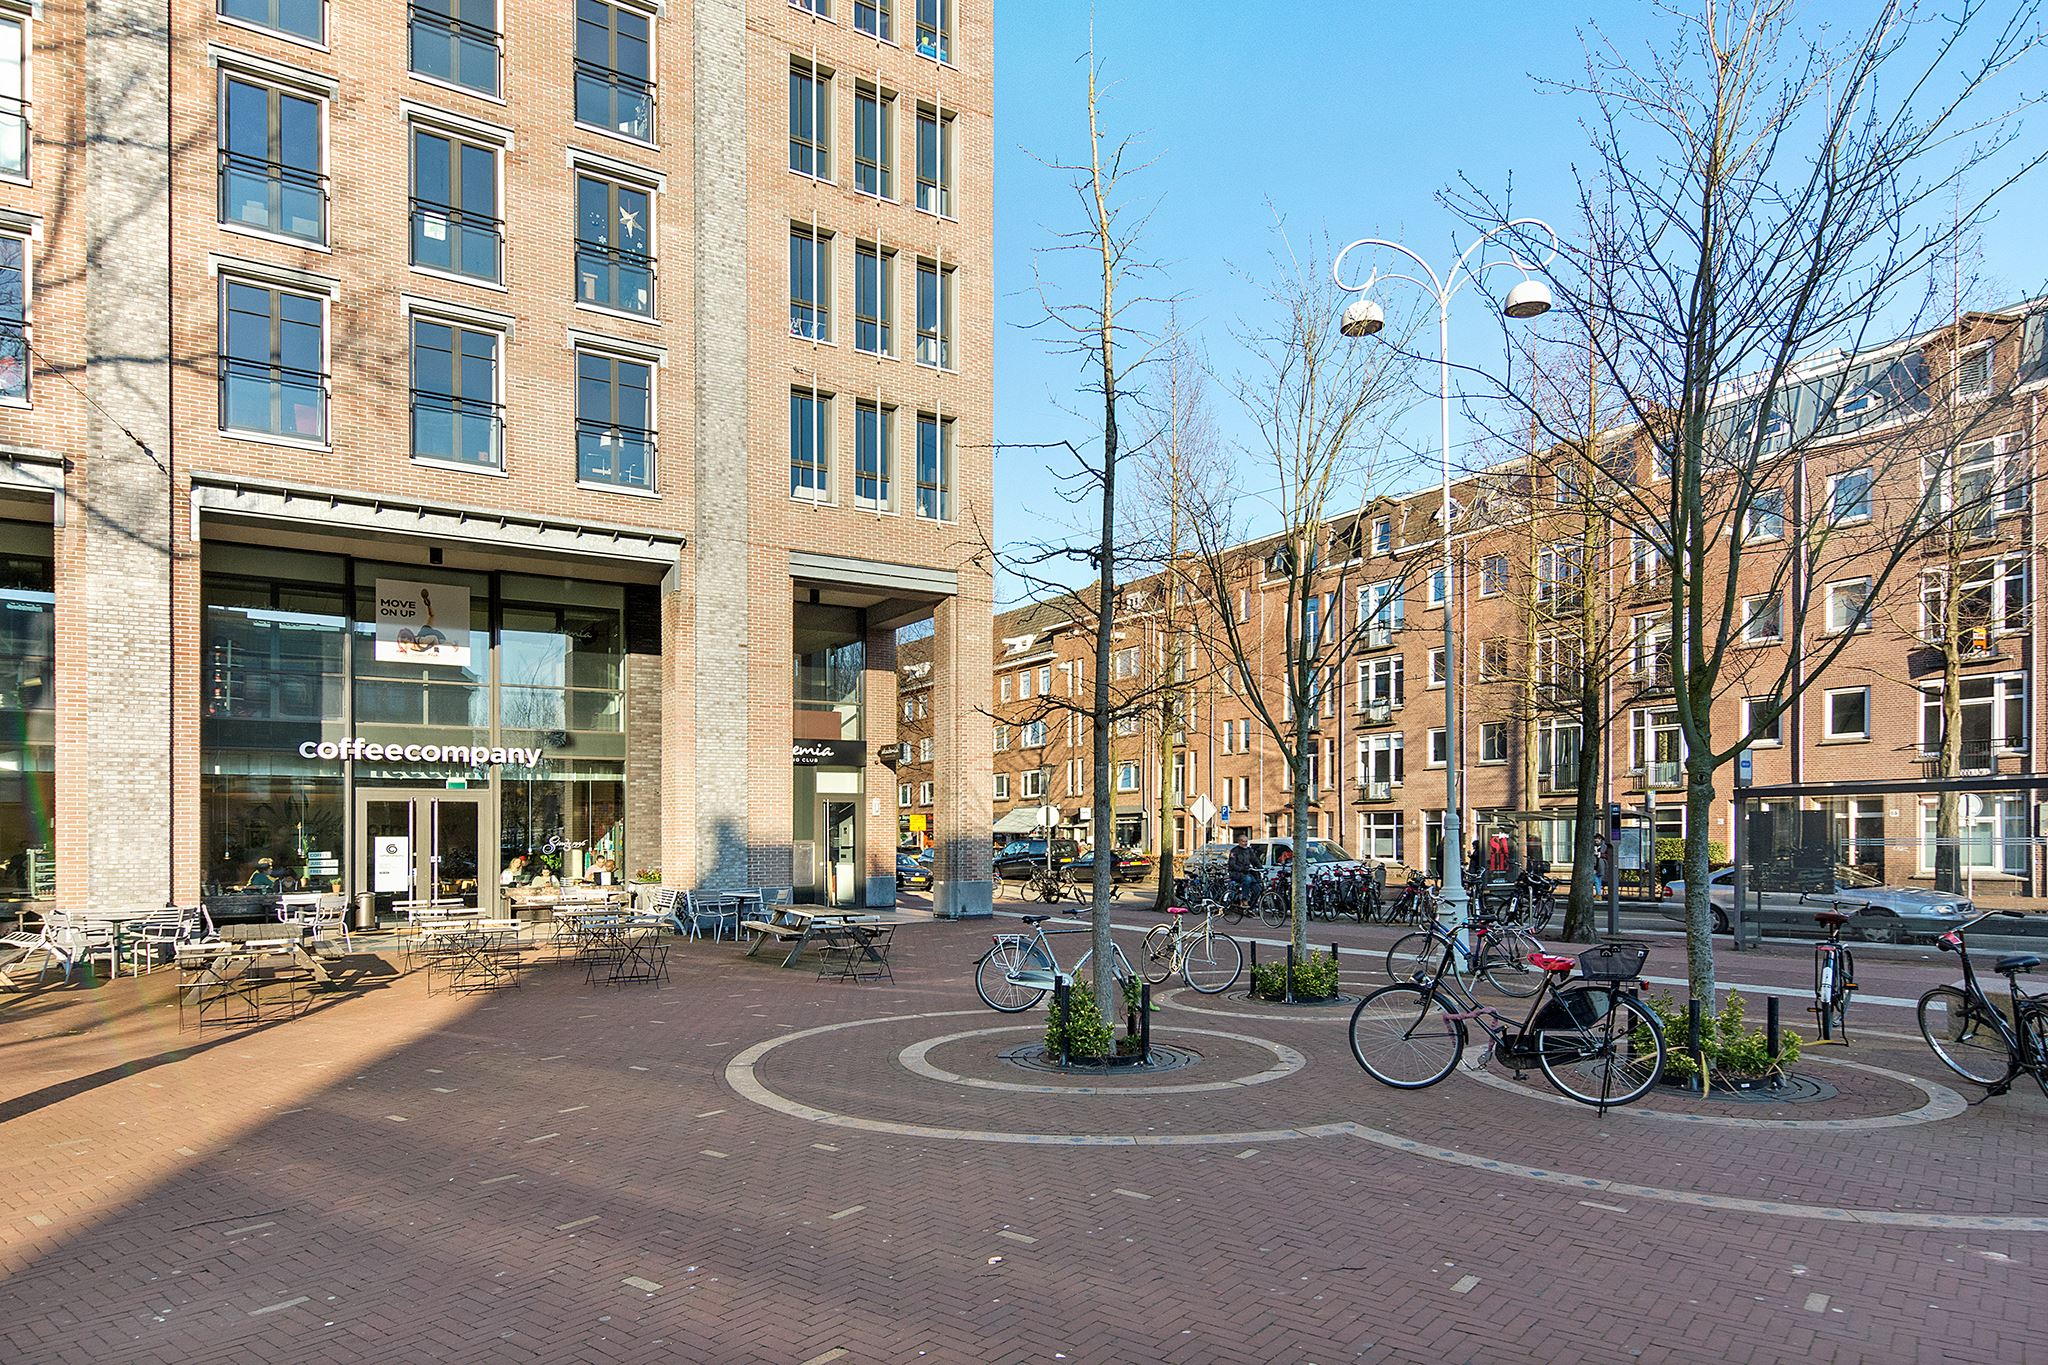 Apartment for sale molukkenstraat 57 i 1095 av amsterdam for Molukkenstraat amsterdam